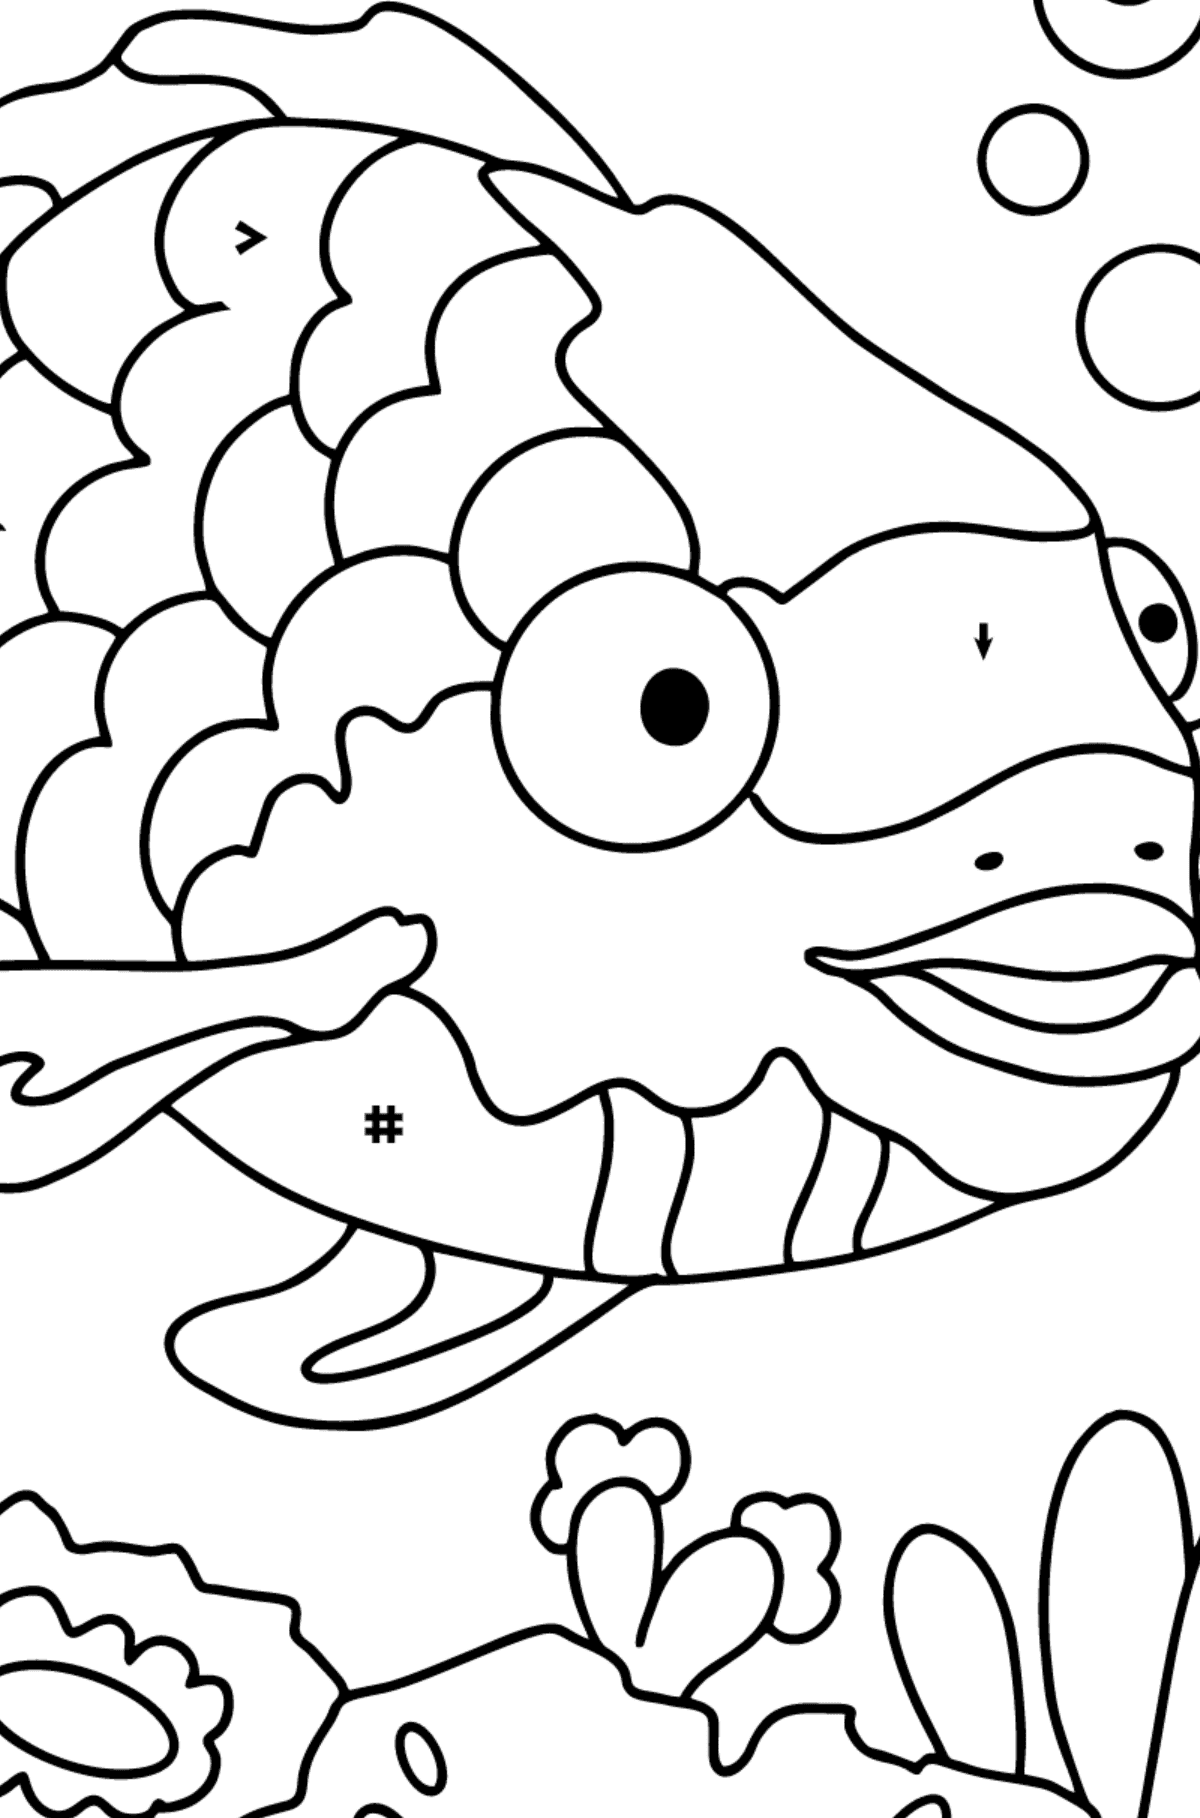 Coloring Page - A Fish with Multicolored Scales - Coloring by Symbols for Children